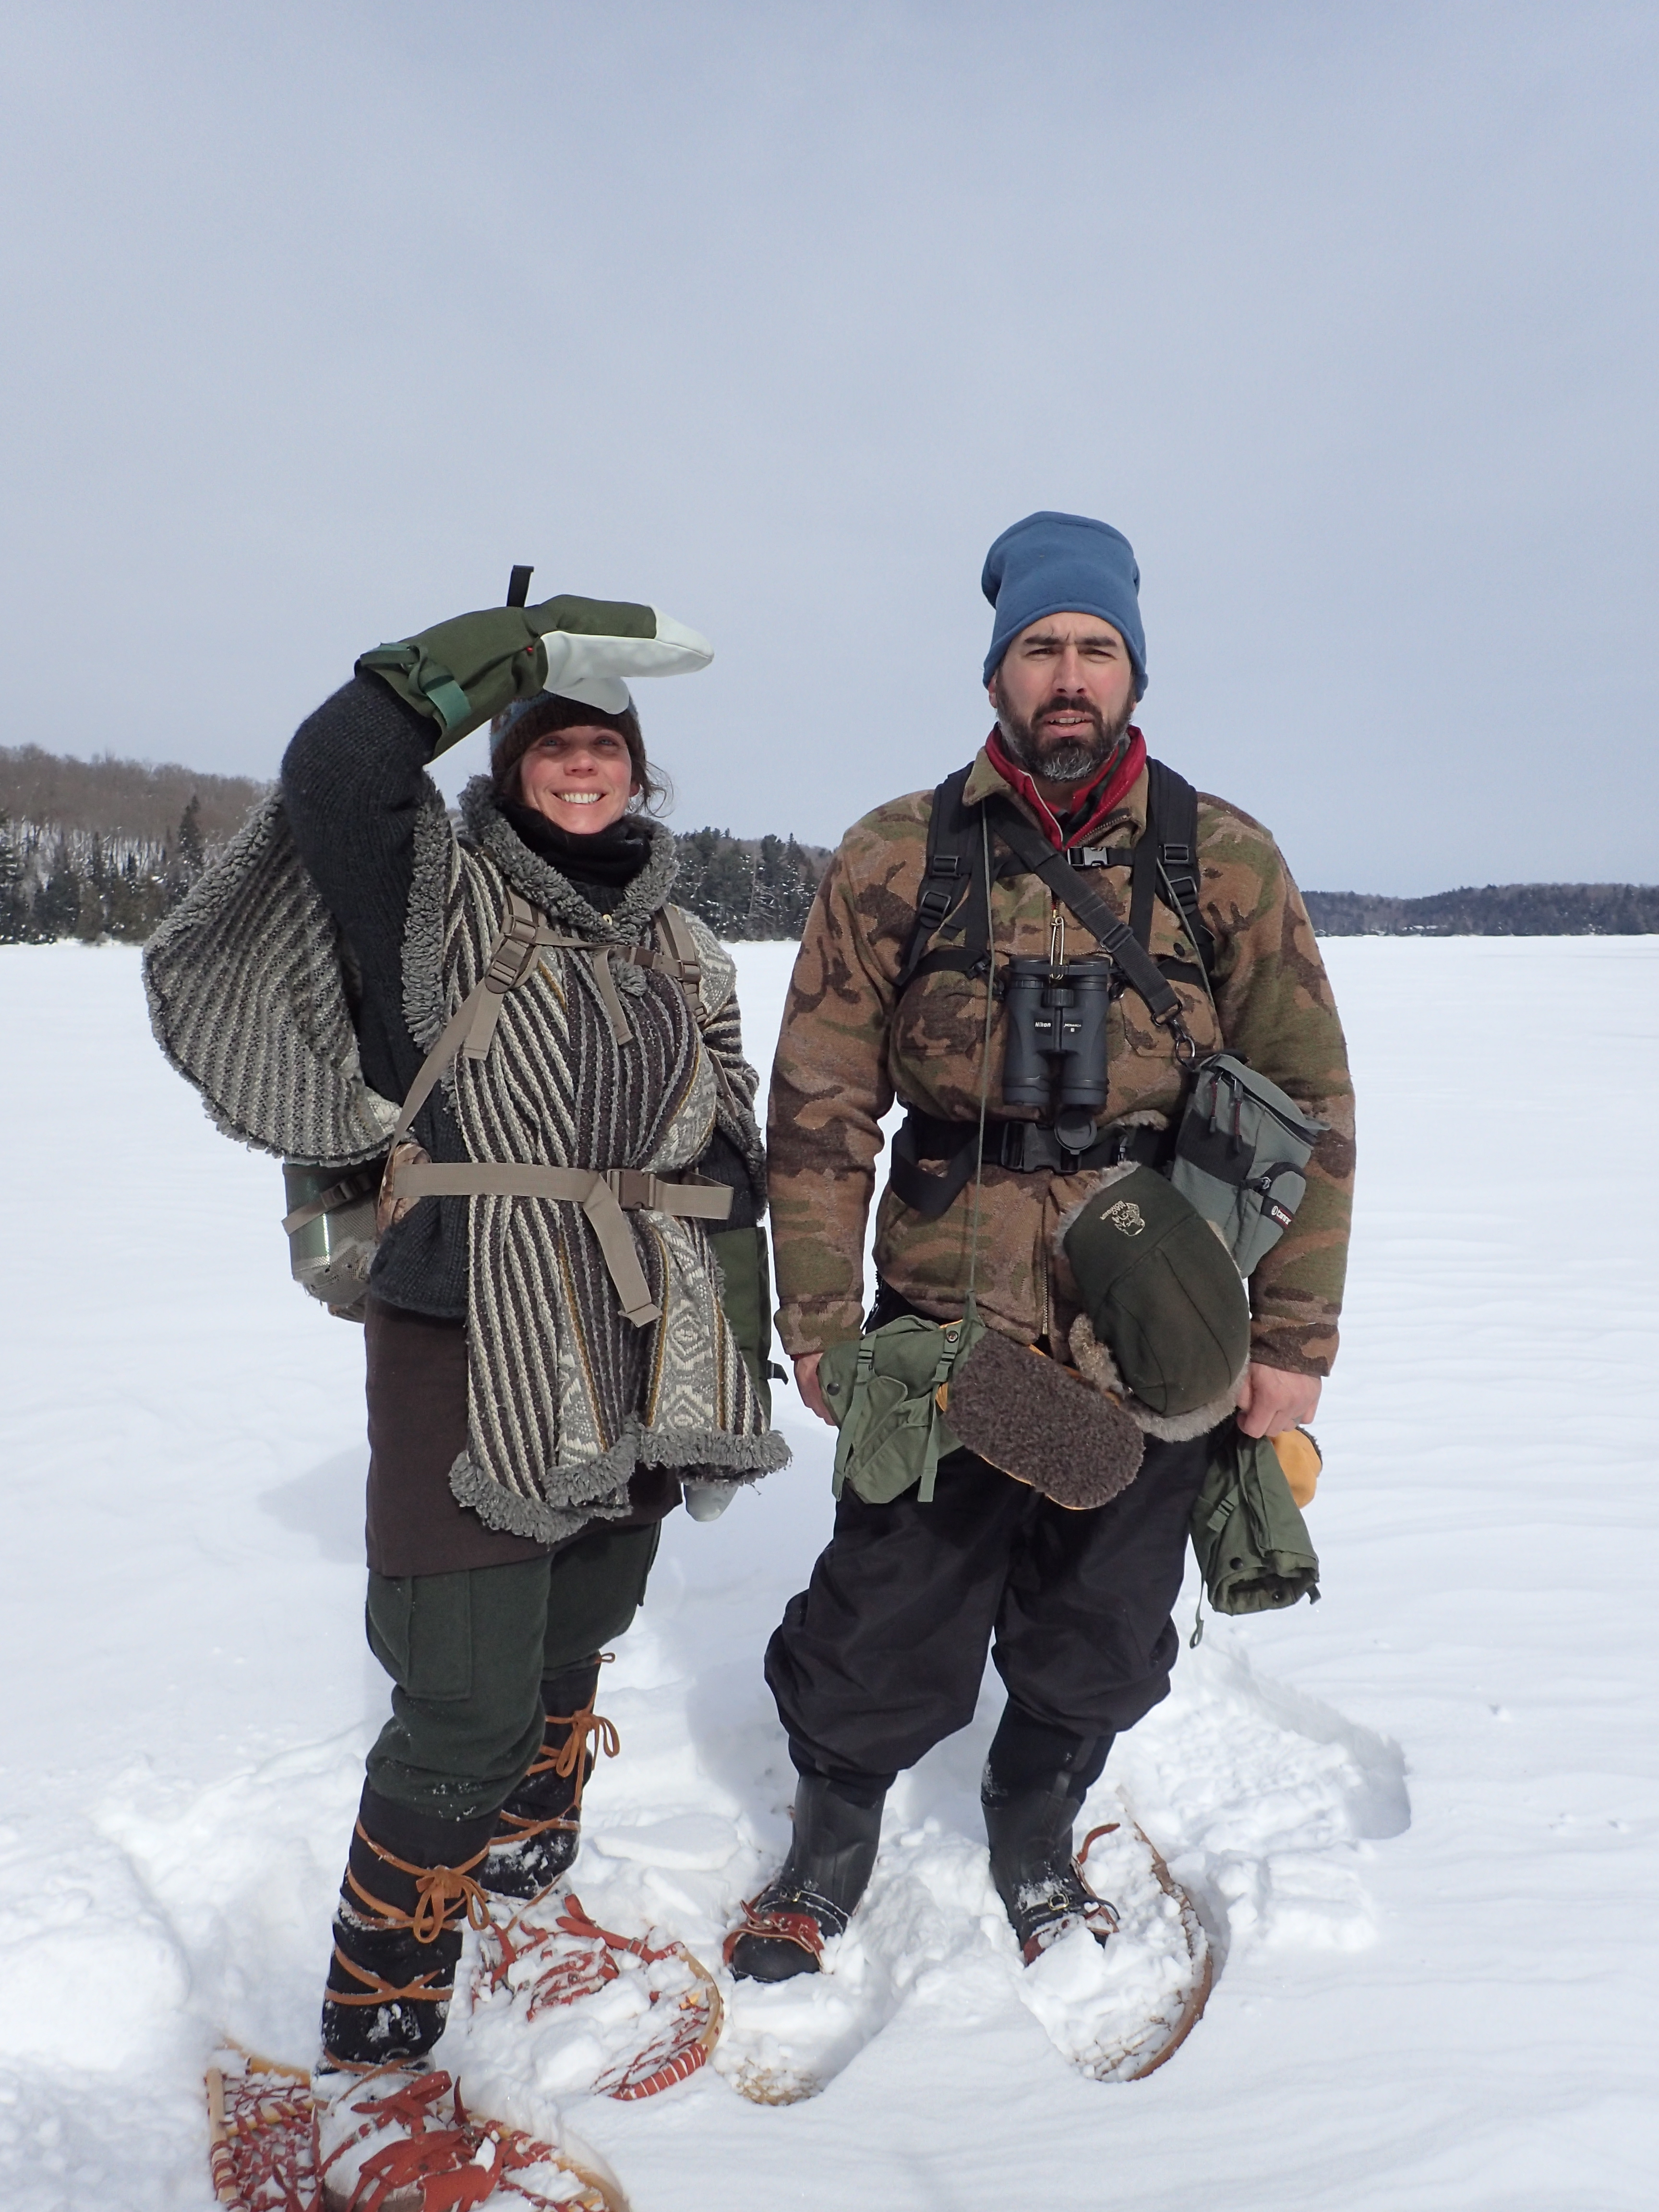 Deneen and Andy in our cold weather attire